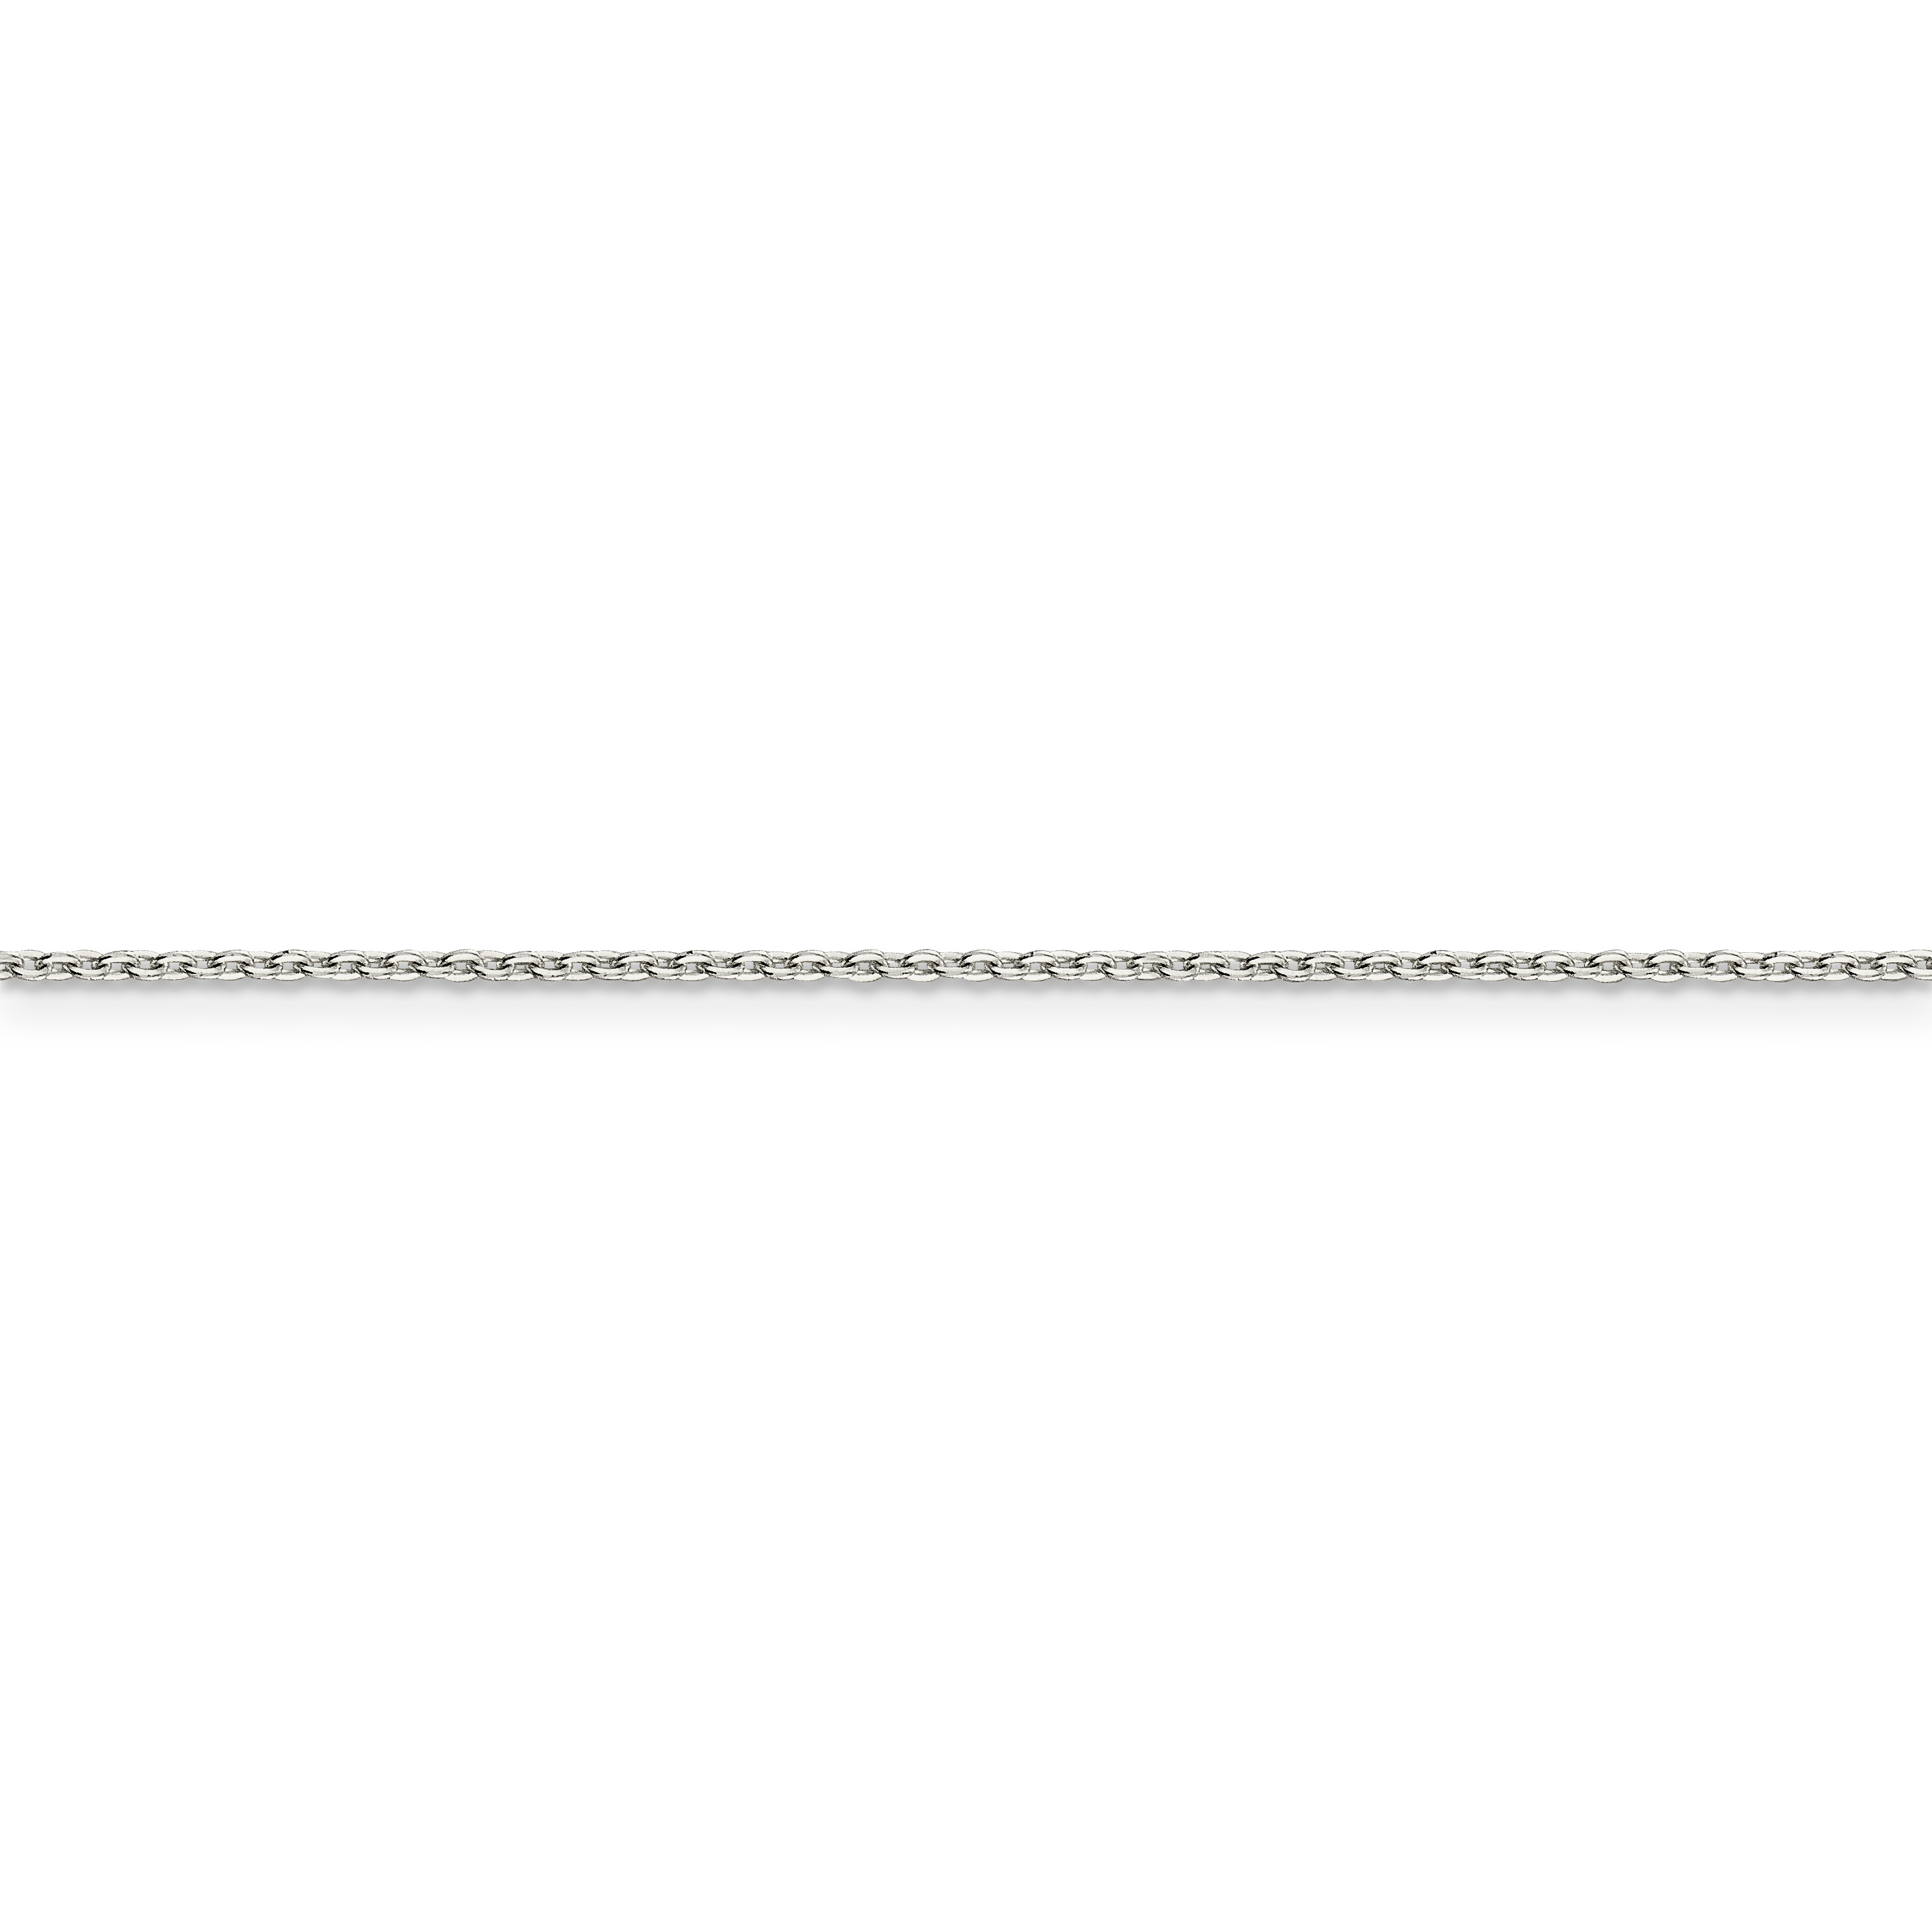 925 Sterling Silver 1mm Flat Link Cable Chain Necklace 24 Inch Pendant Charm Fine Jewelry Gifts For Women For Her - image 3 of 5